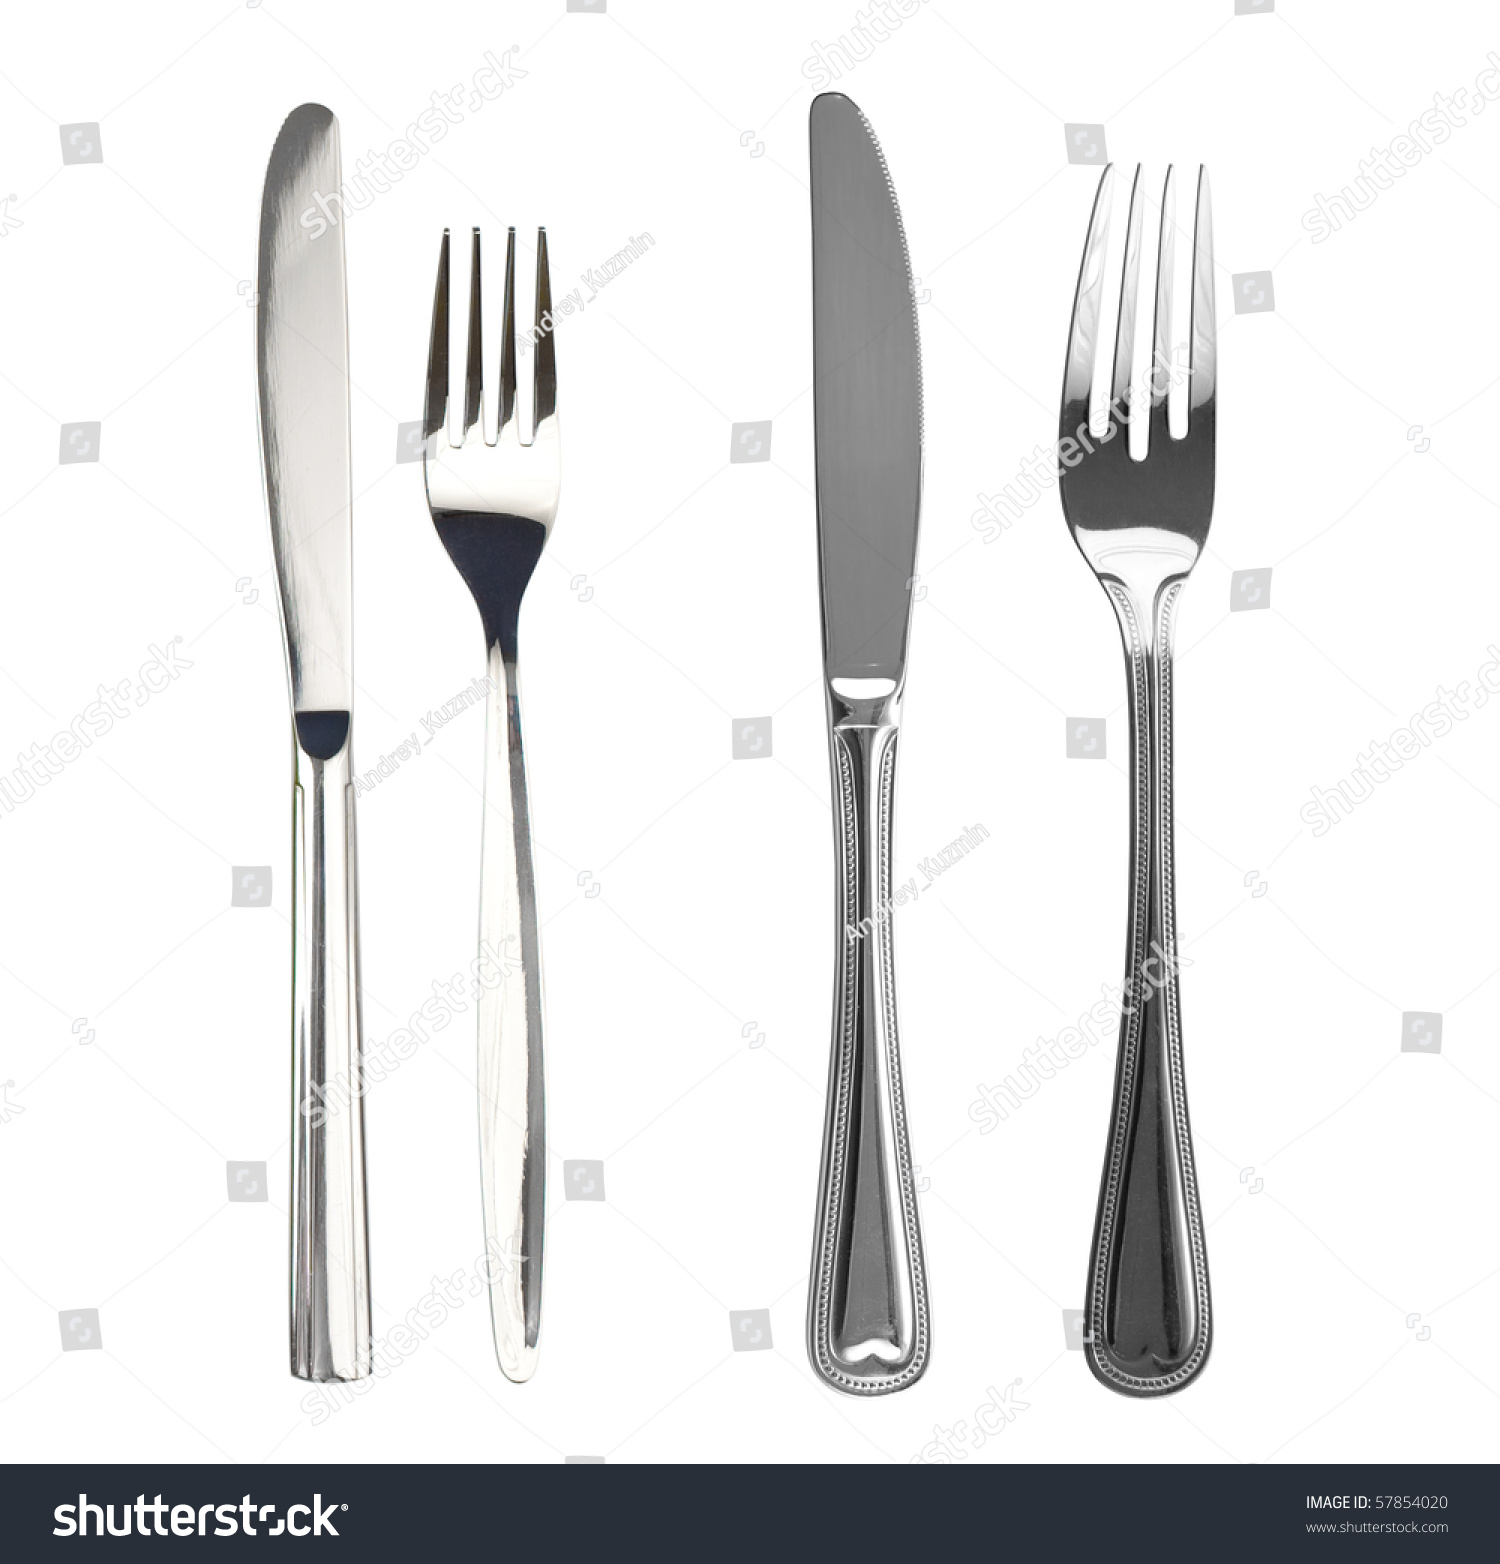 Set knives forks isolated stock photo 57854020 shutterstock - Knives and forks sets ...